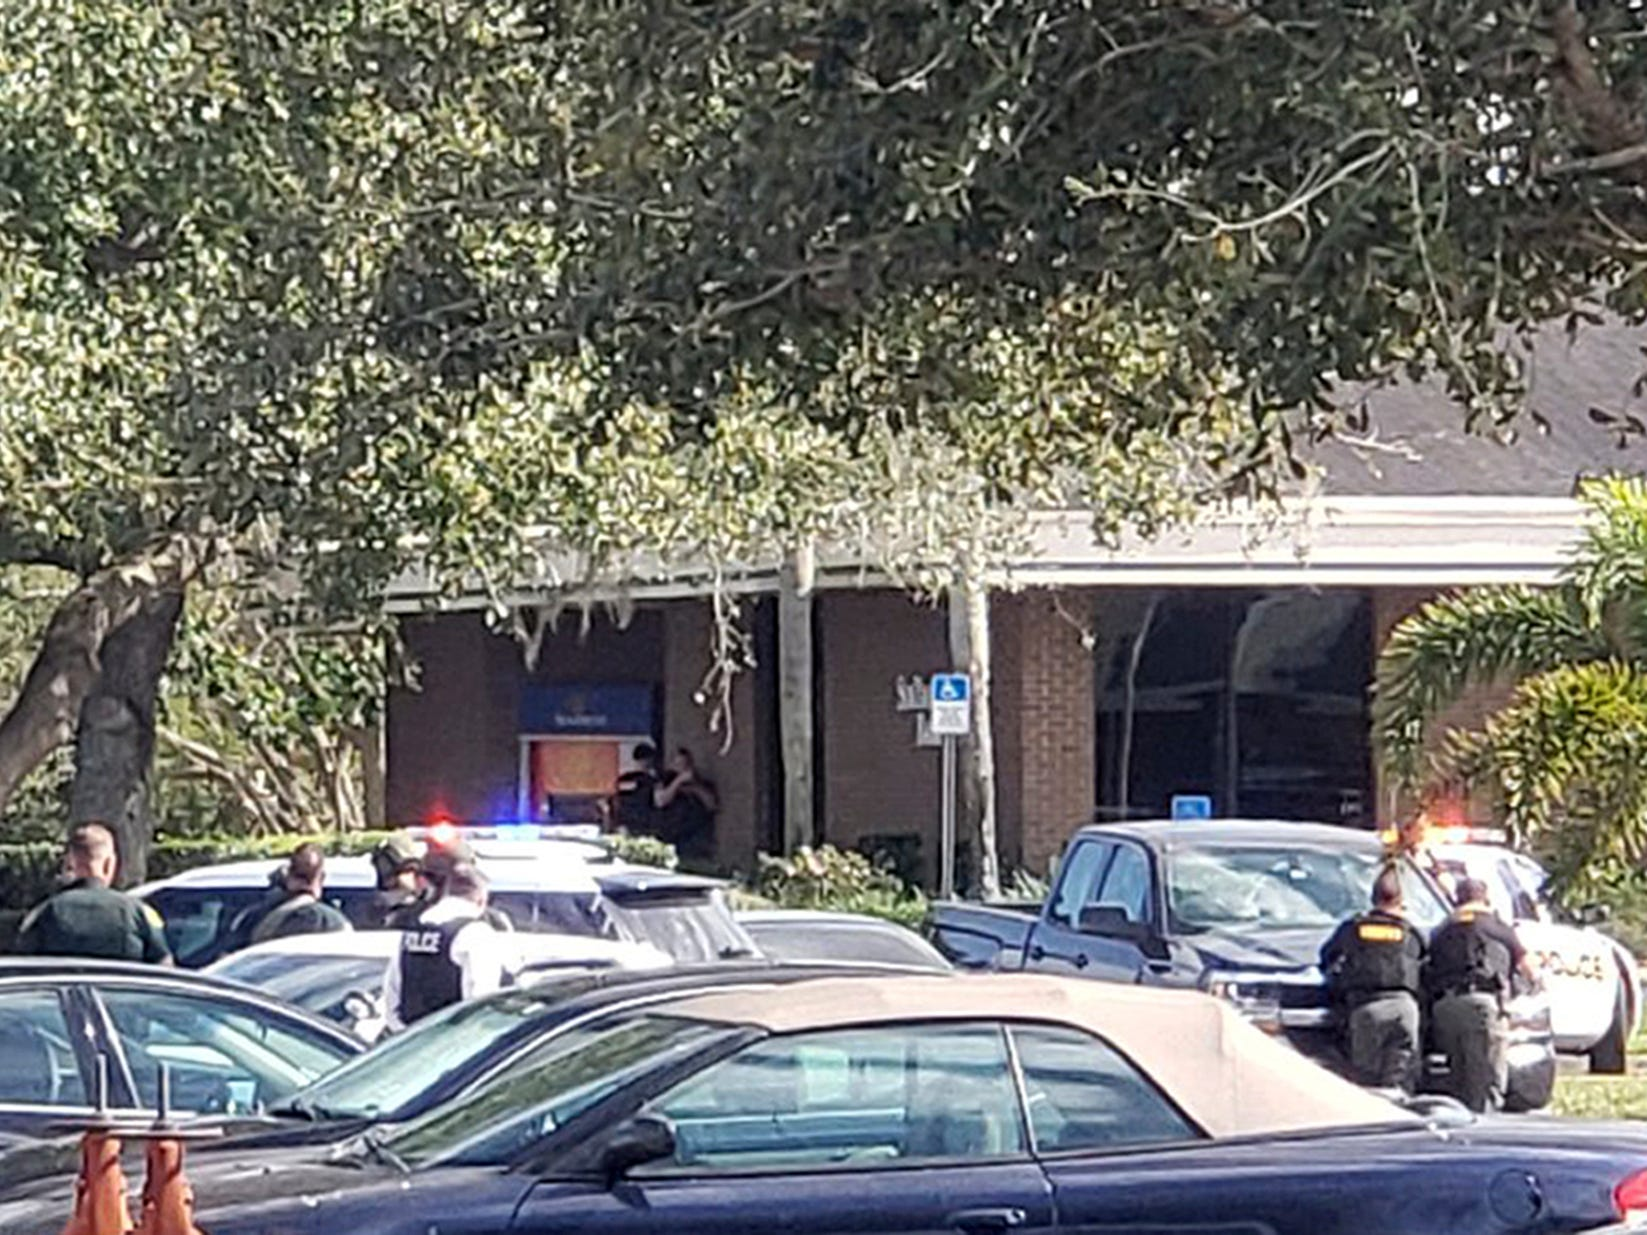 Law enforcement officials take cover outside a SunTrust Bank branch, Wednesday, Jan. 23, 2019, in Sebring, Fla.